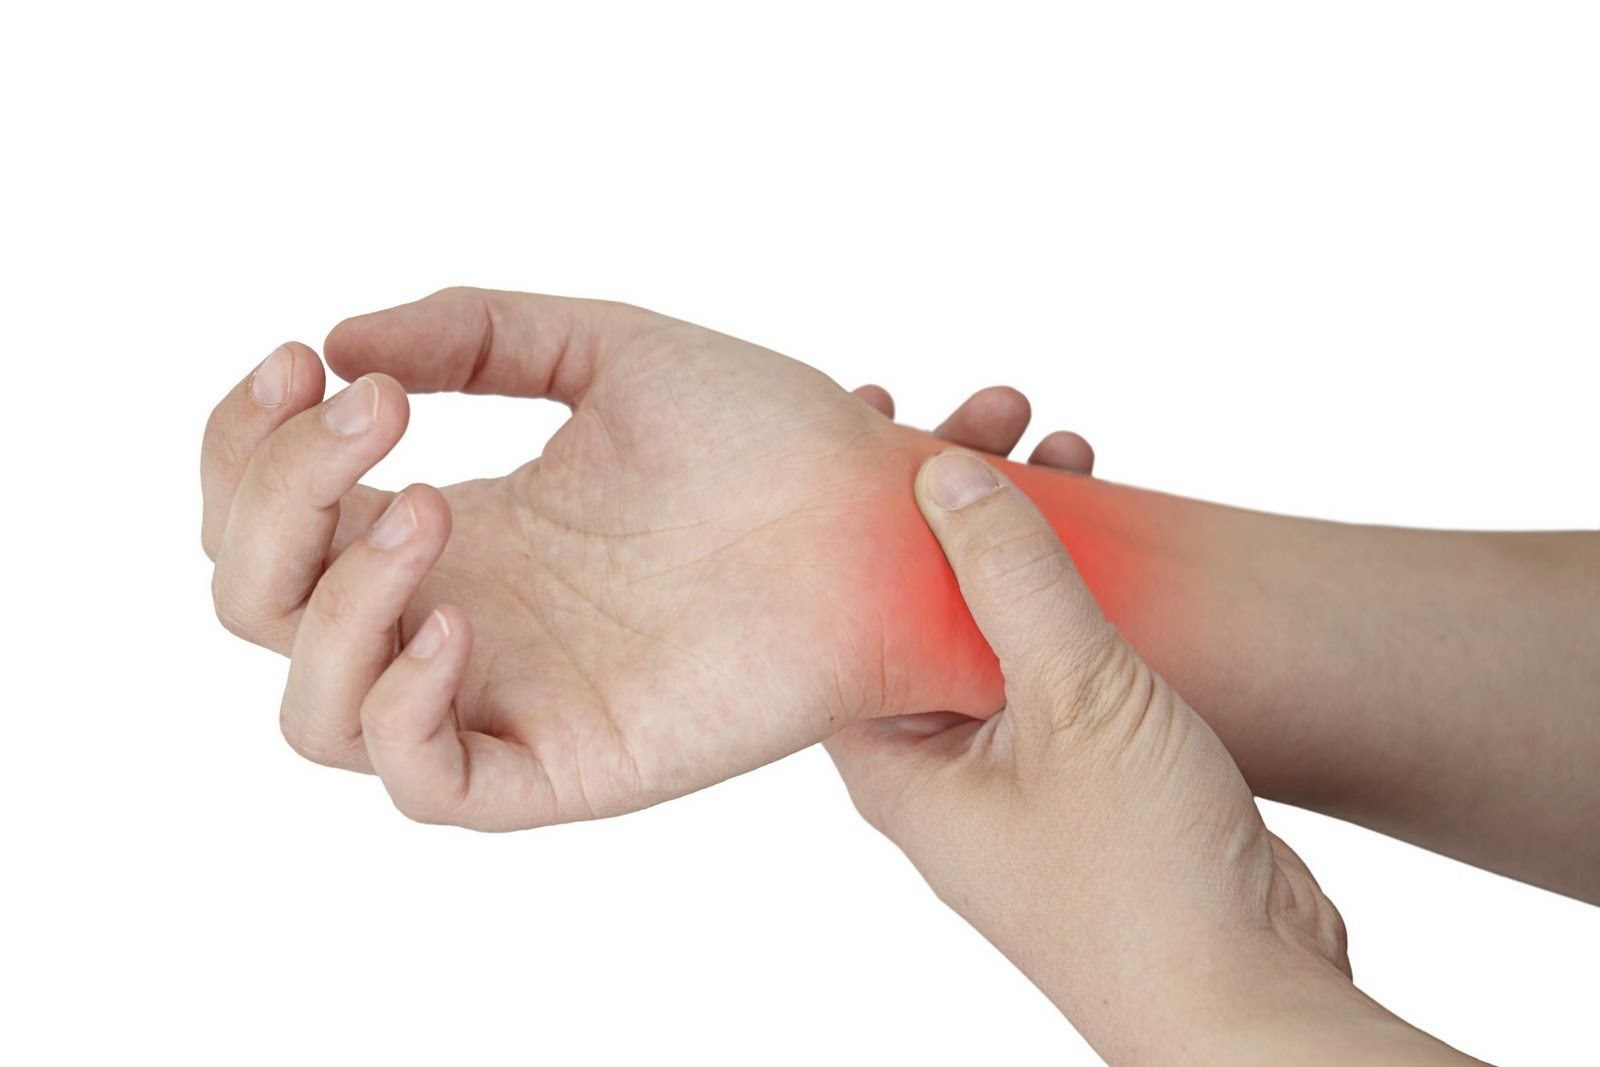 Treatments for Carpal Tunnel Syndrome